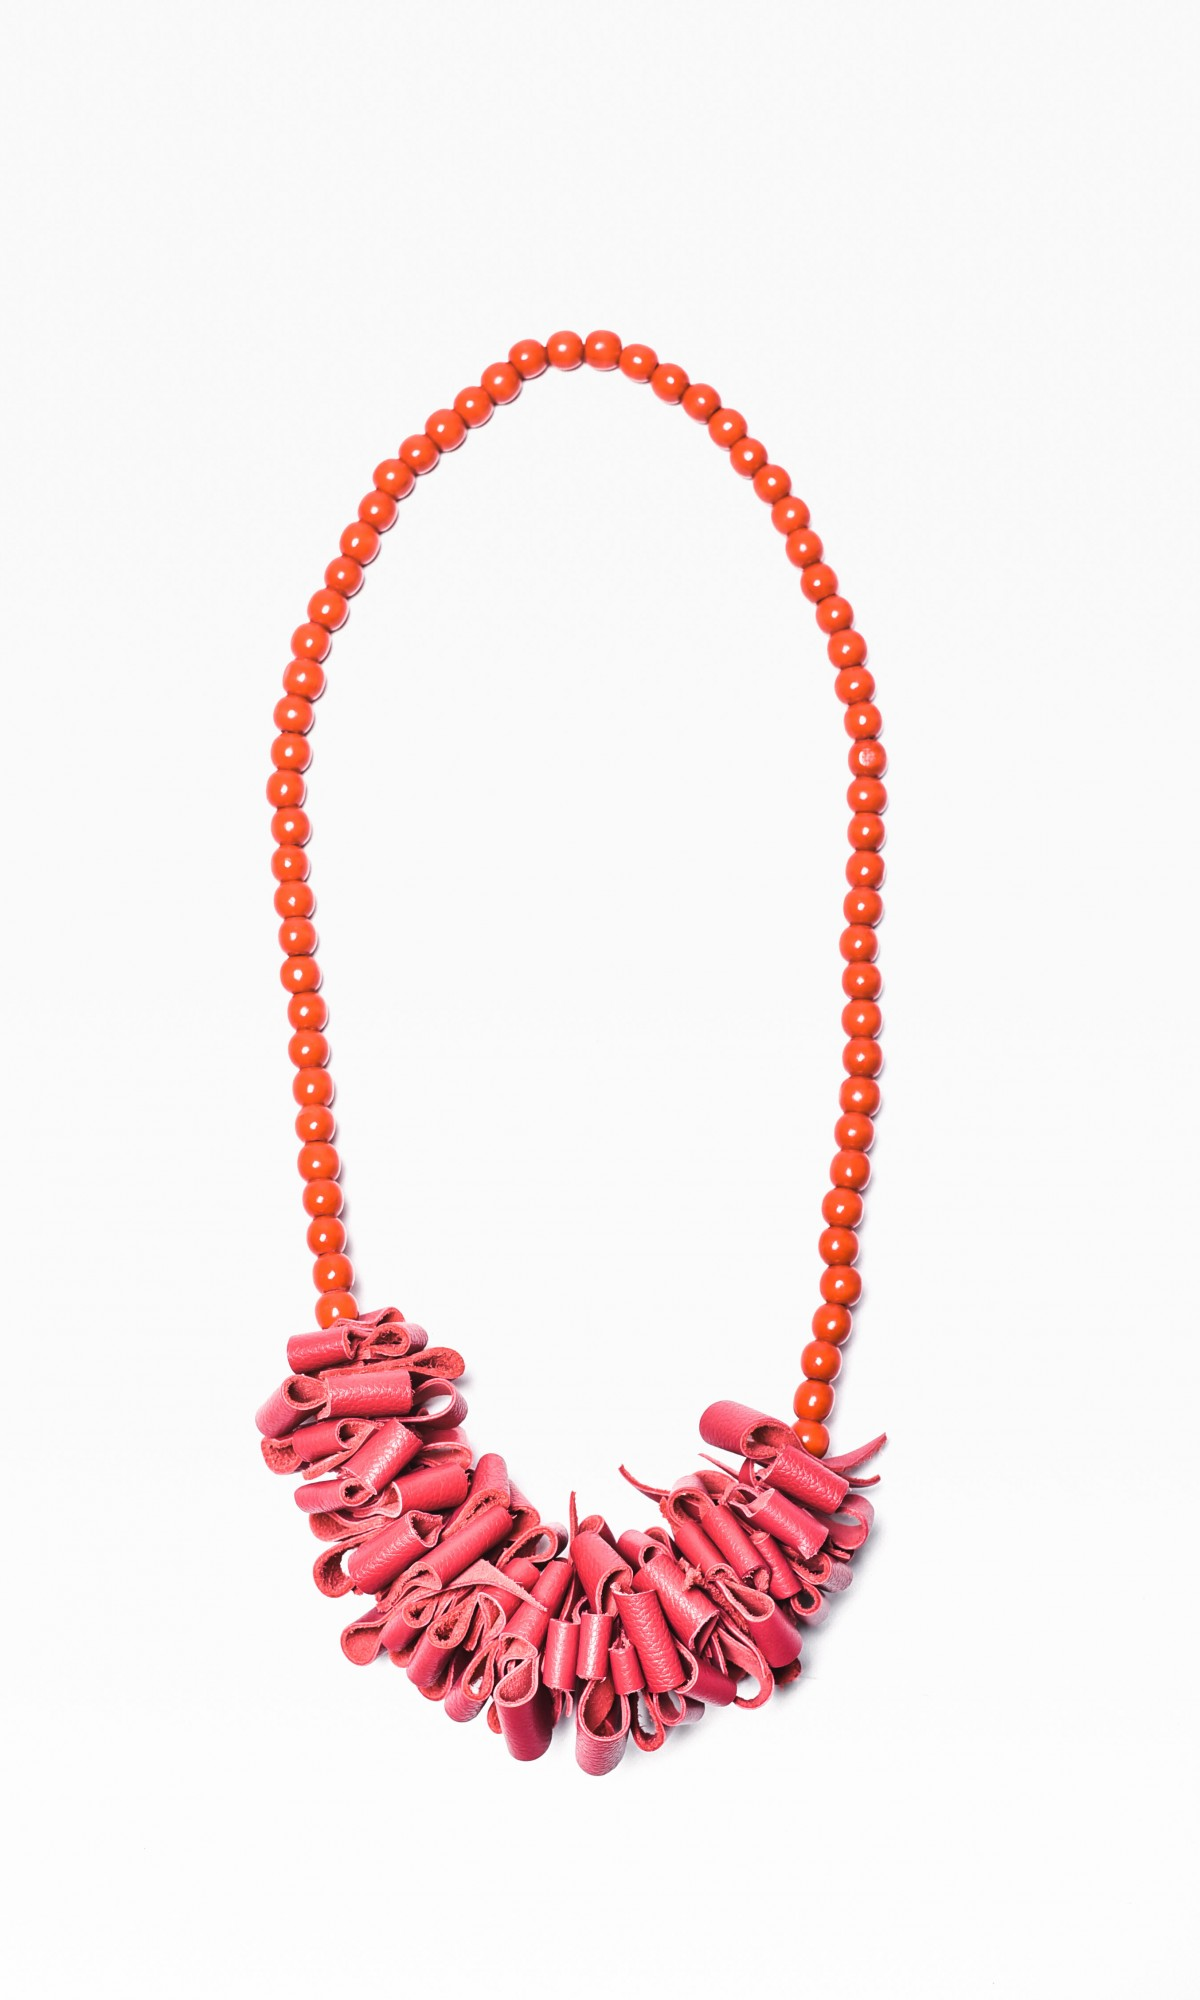 Fuchsia Genuine Leather Long  Necklace with Beads